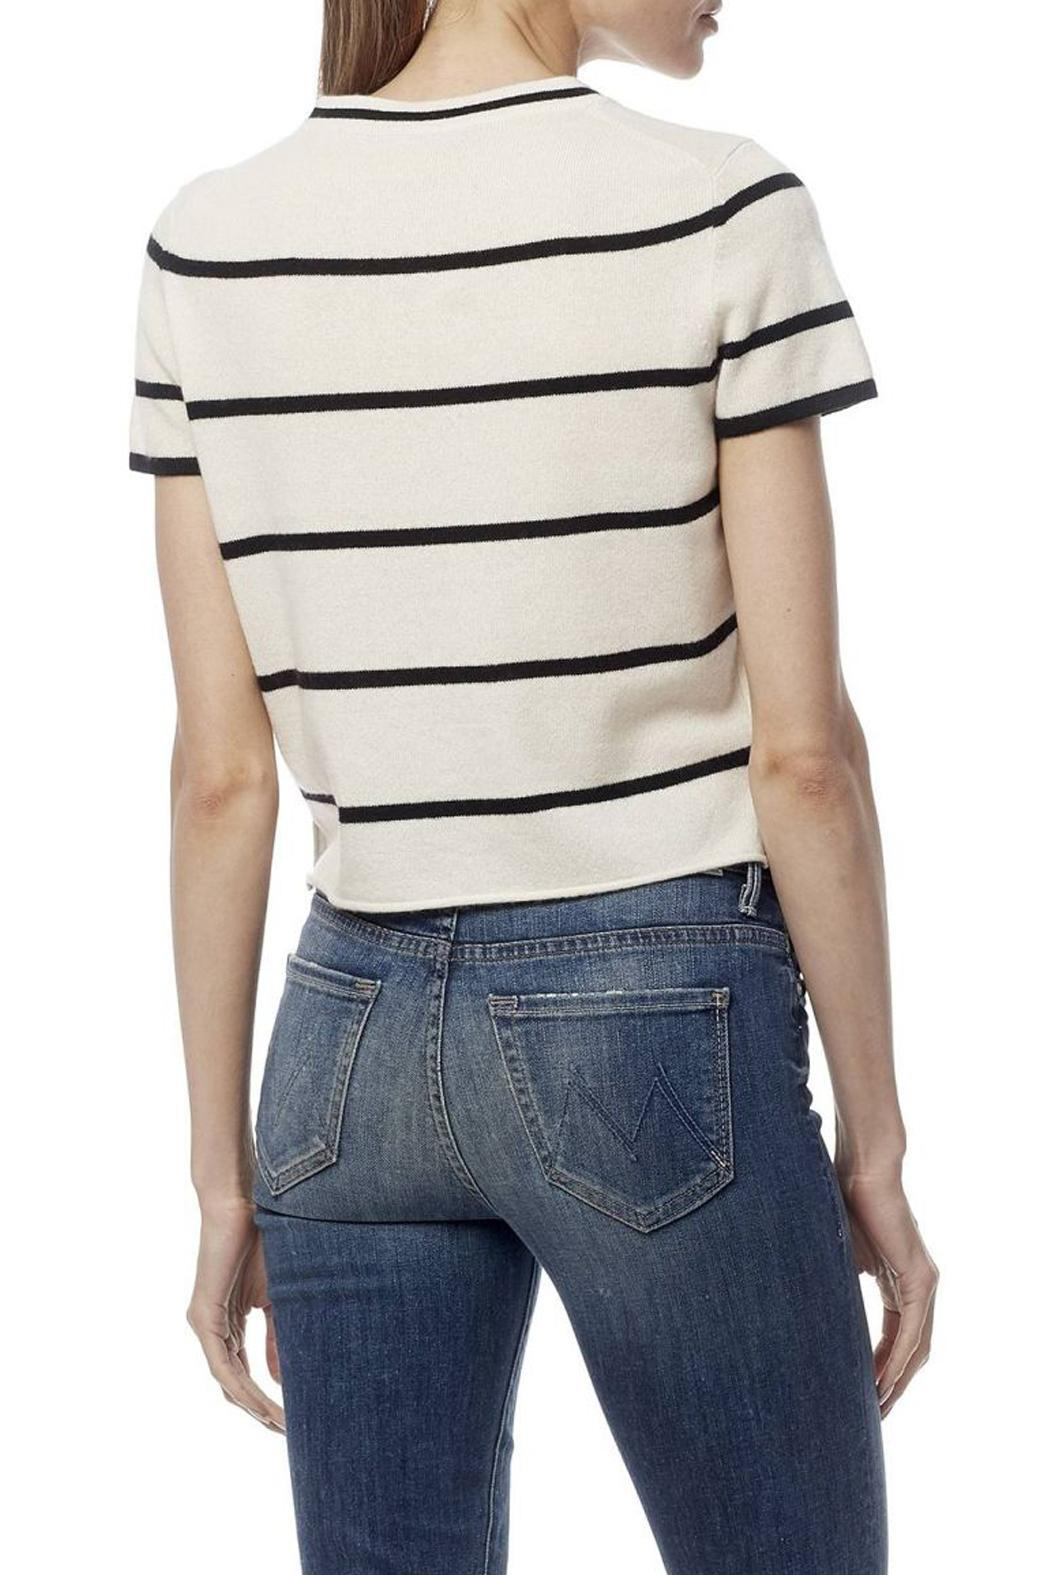 360 Cashmere Annabelle Stripe Cashmere Top - Front Full Image